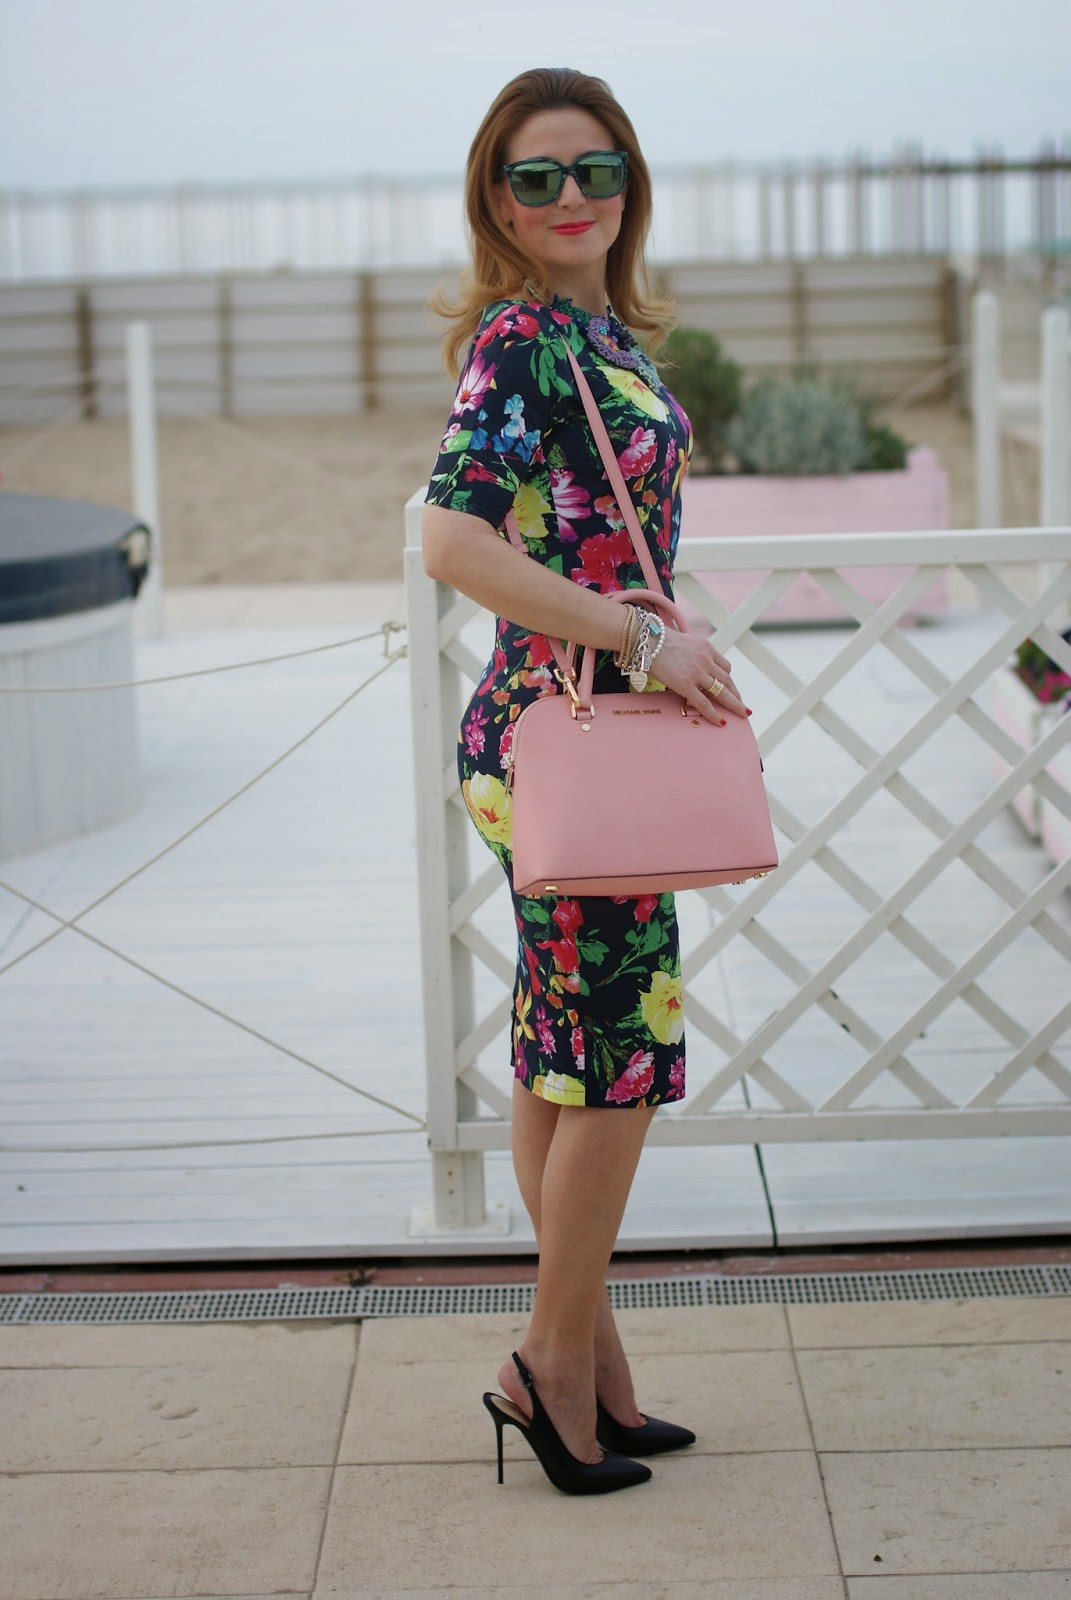 Ax Paris floral midi dress, bodycon floral dress, Michael Kors Cindy pink bag, HypeGlass sunglasses on Fashion and Cookies fashion blog, fashion blogger style